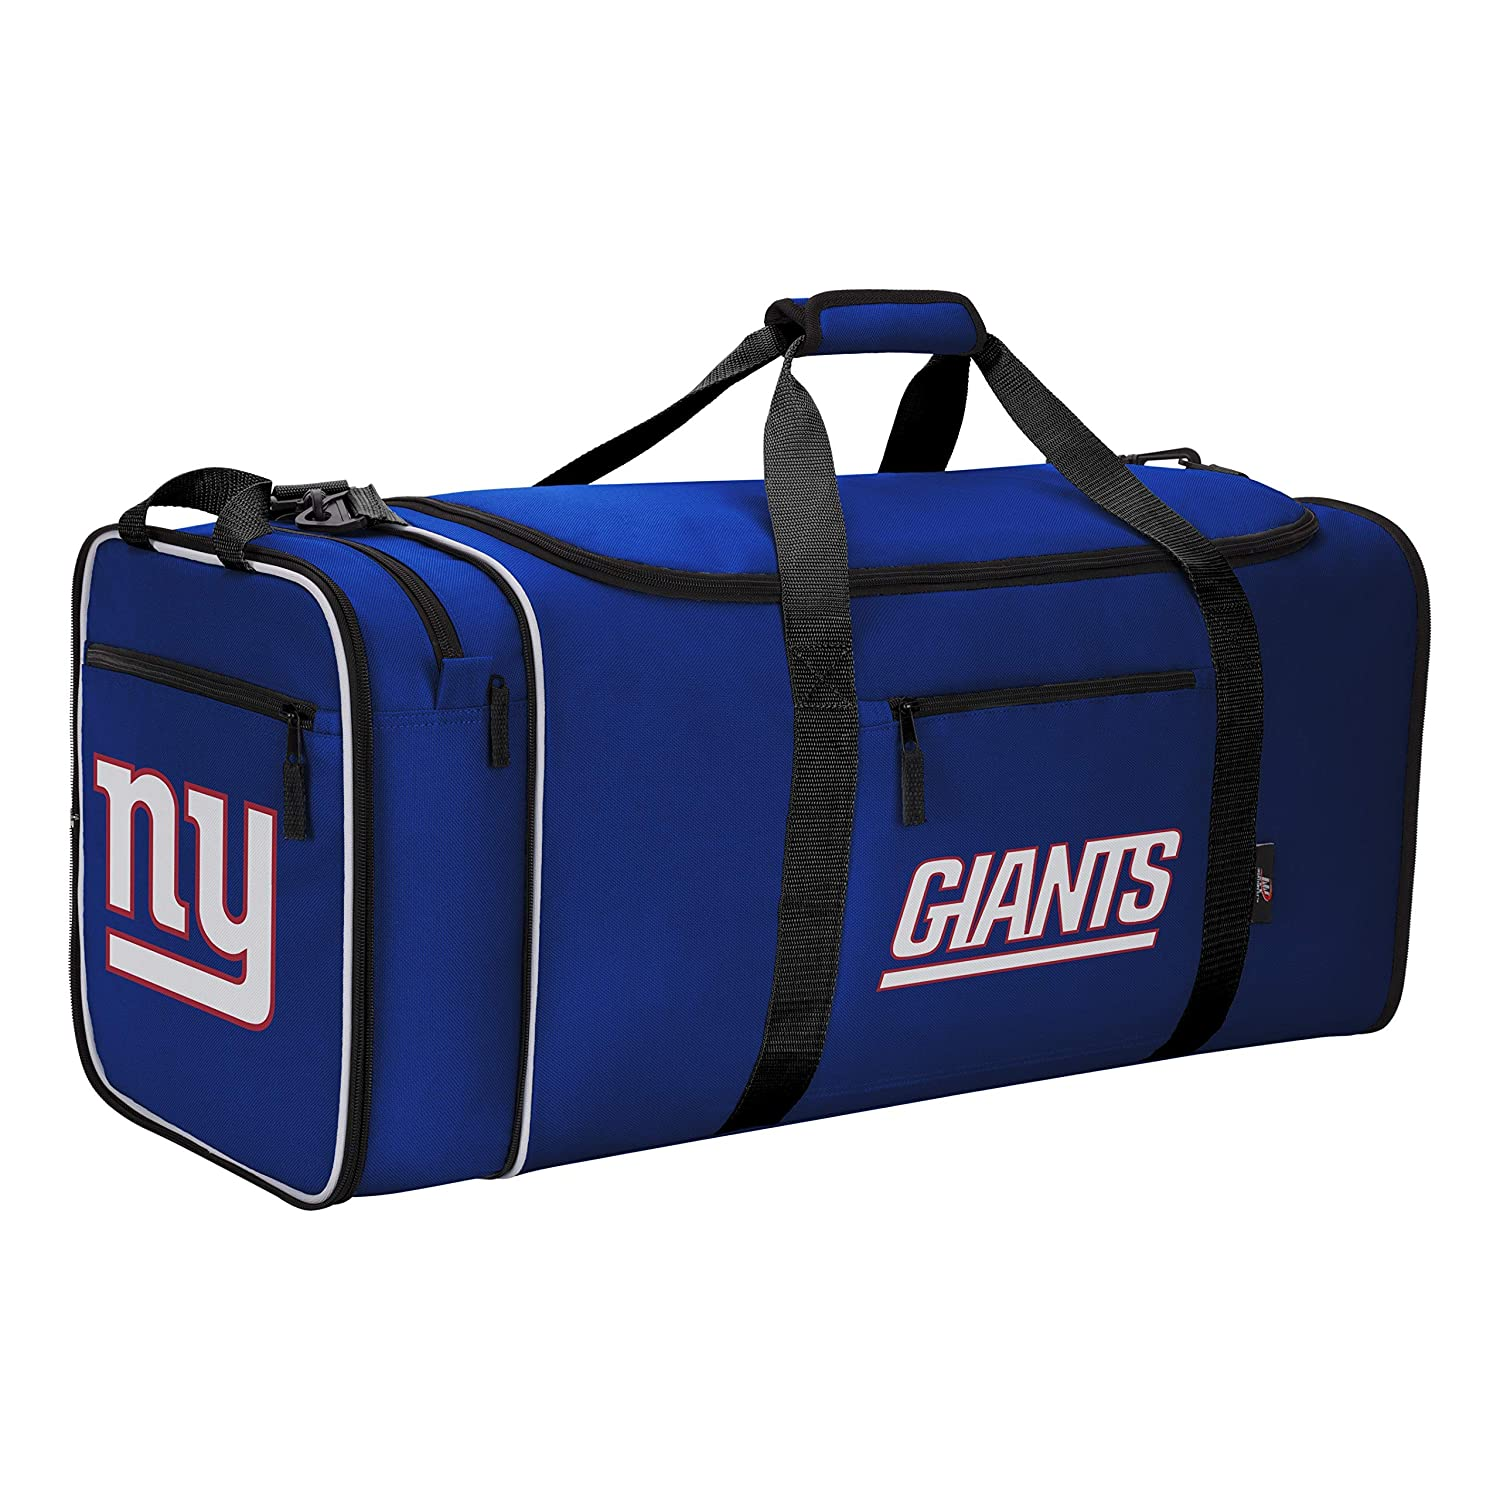 Renewed Multi Color Officially Licensed NFL Steal Duffel Bag 28 x 11 x 12